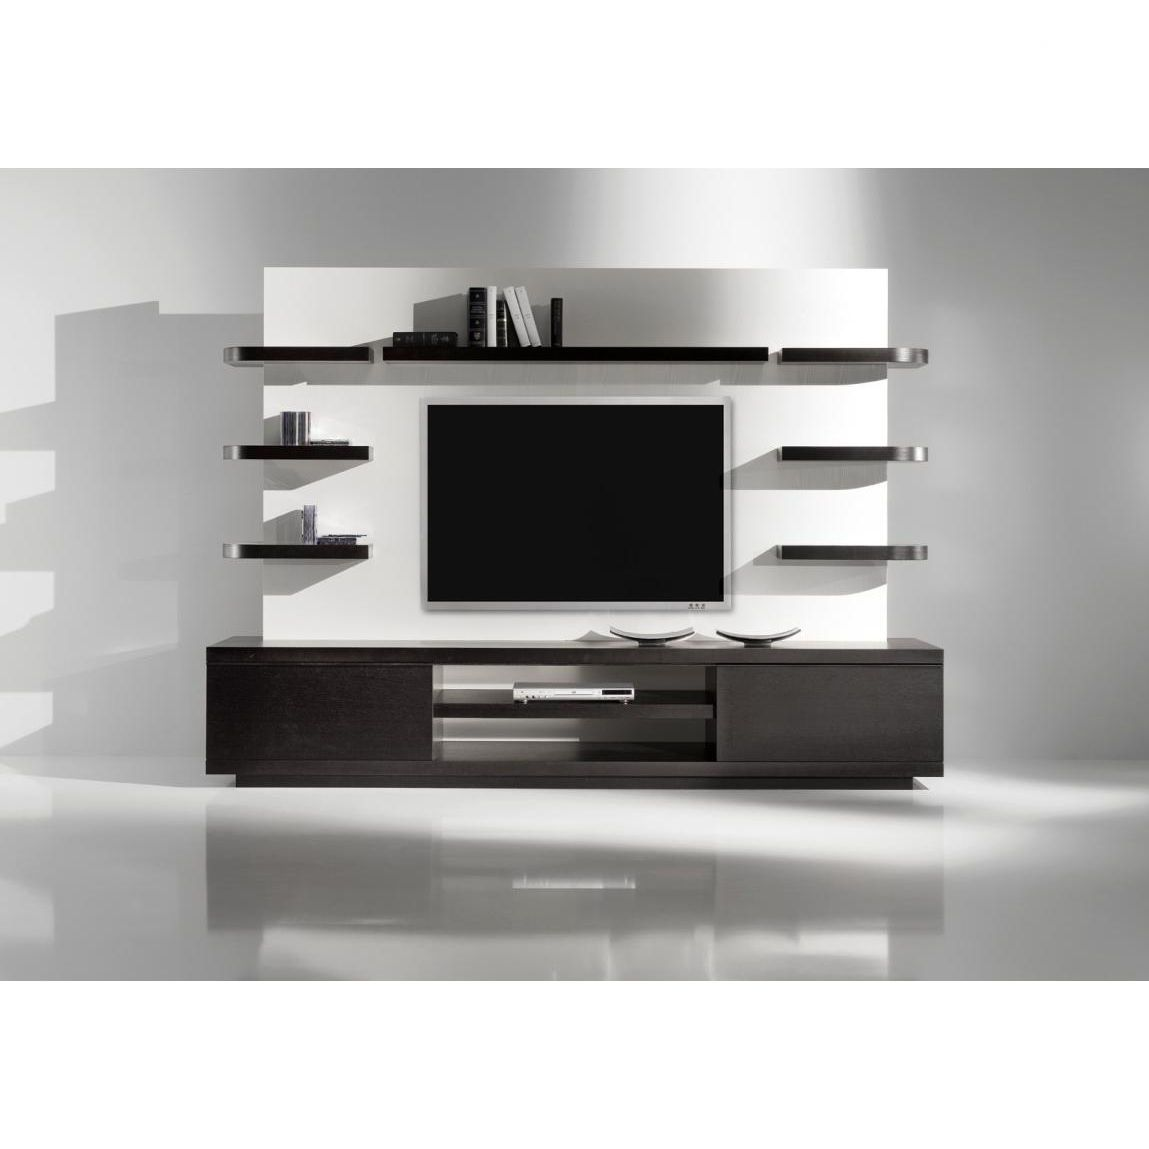 yumanmod vision single wall unit in wenge | allmodern | home decor